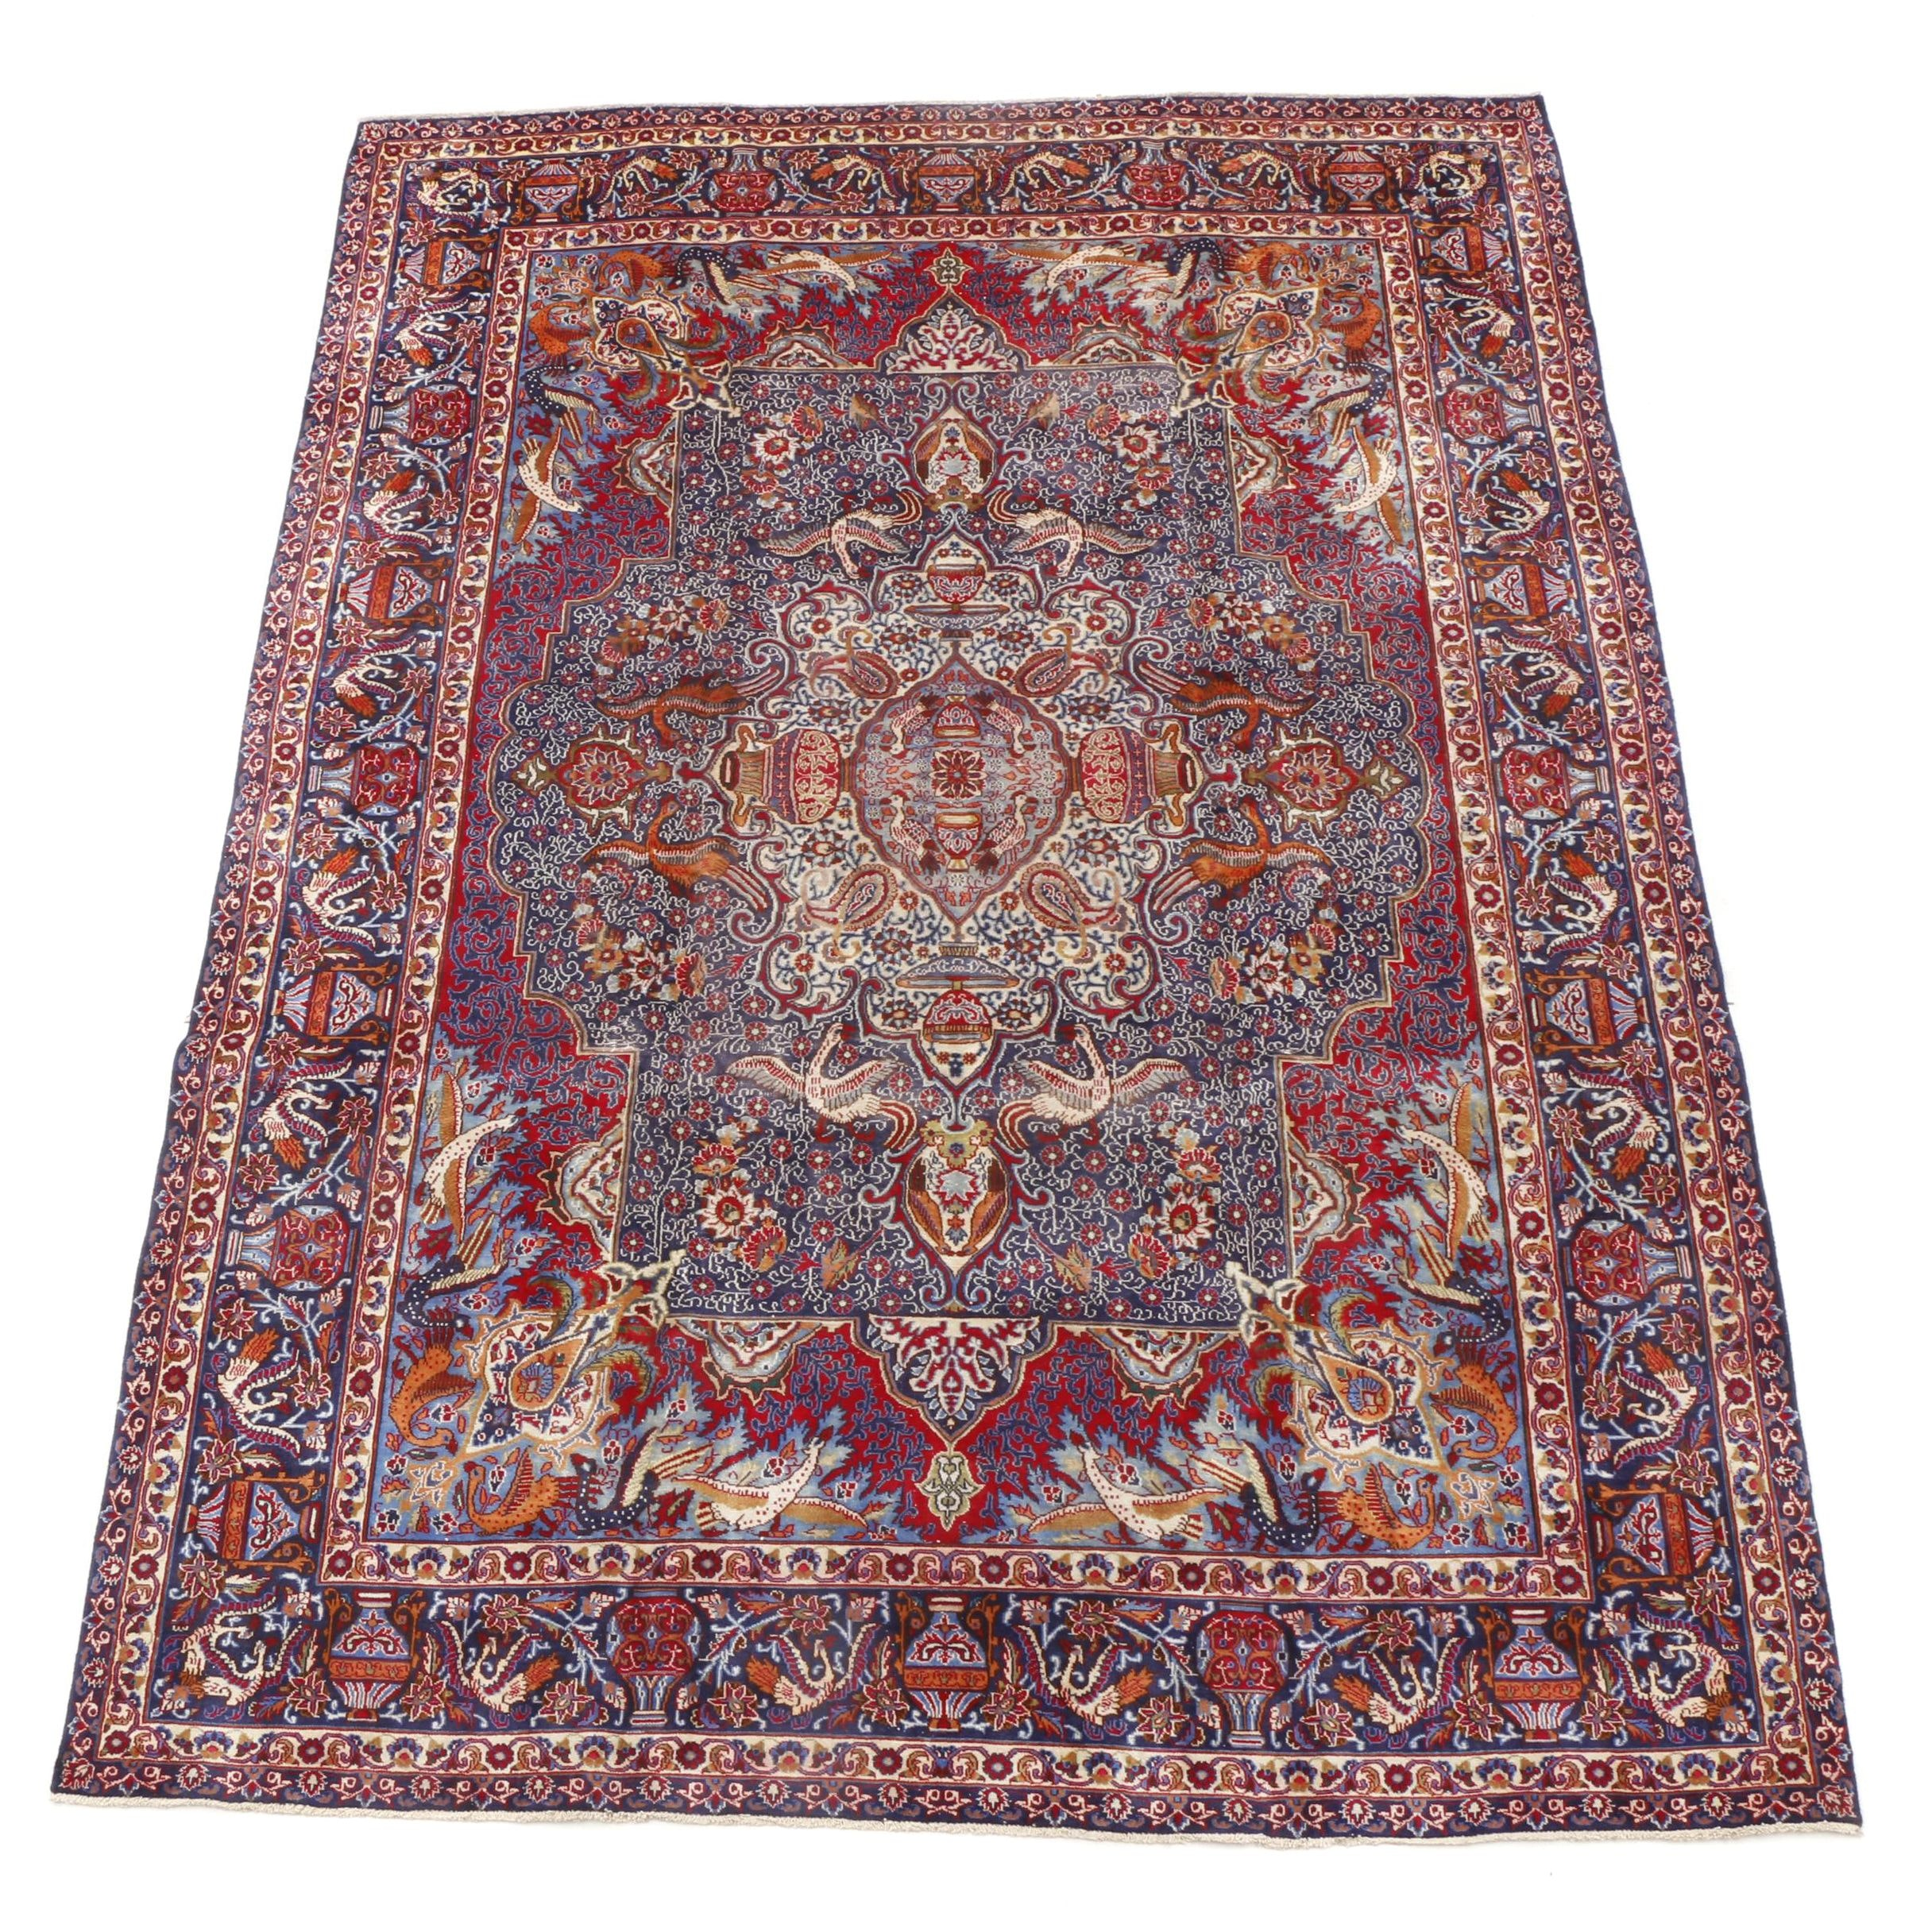 Finely Hand-Knotted Persian Archaeological Kashmar Room-Sized Rug